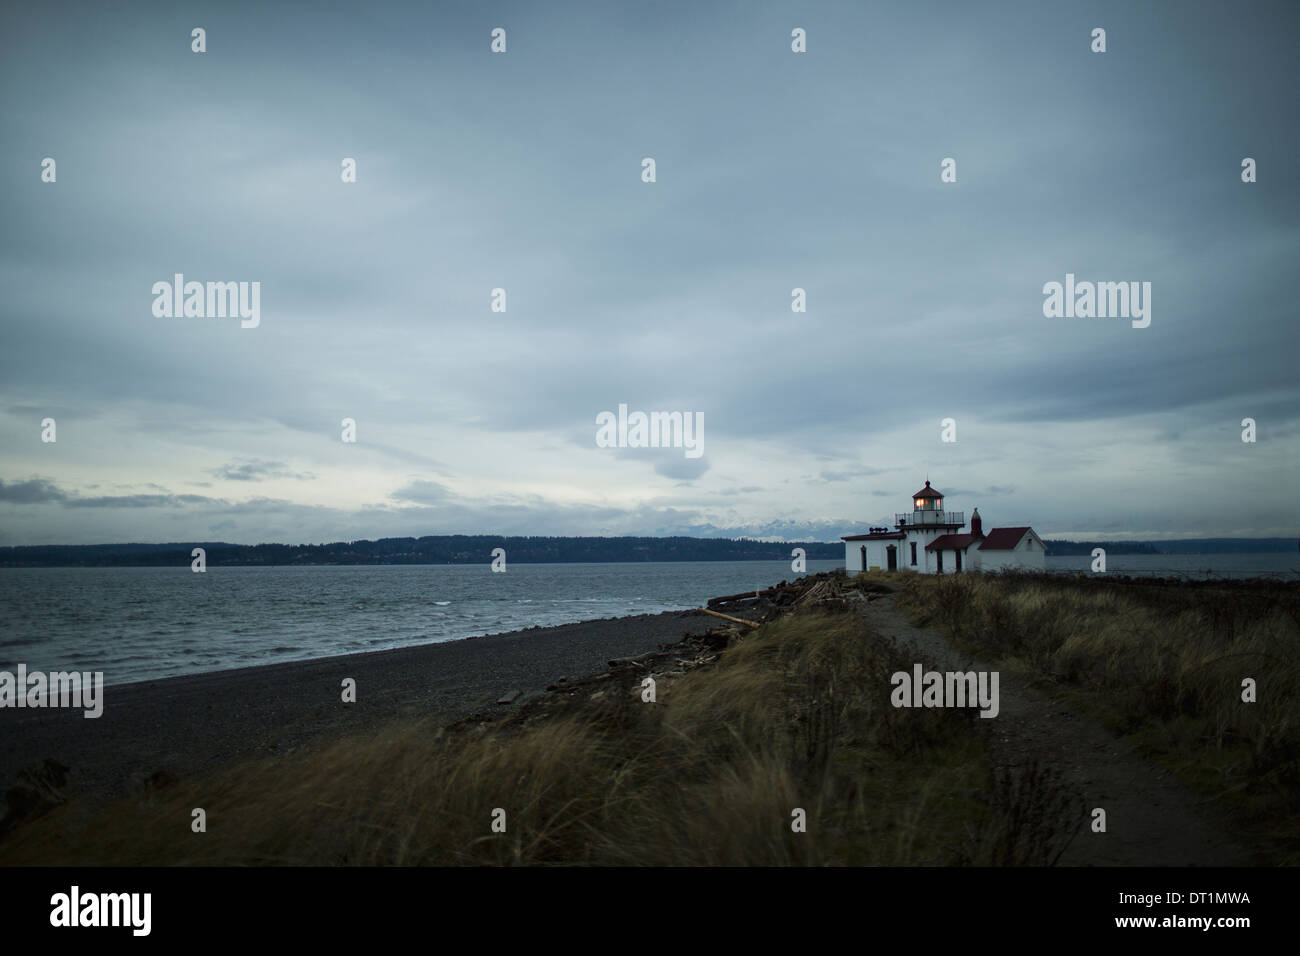 The lighthouse at dusk at Discovery Park in Seattle WA - Stock Image